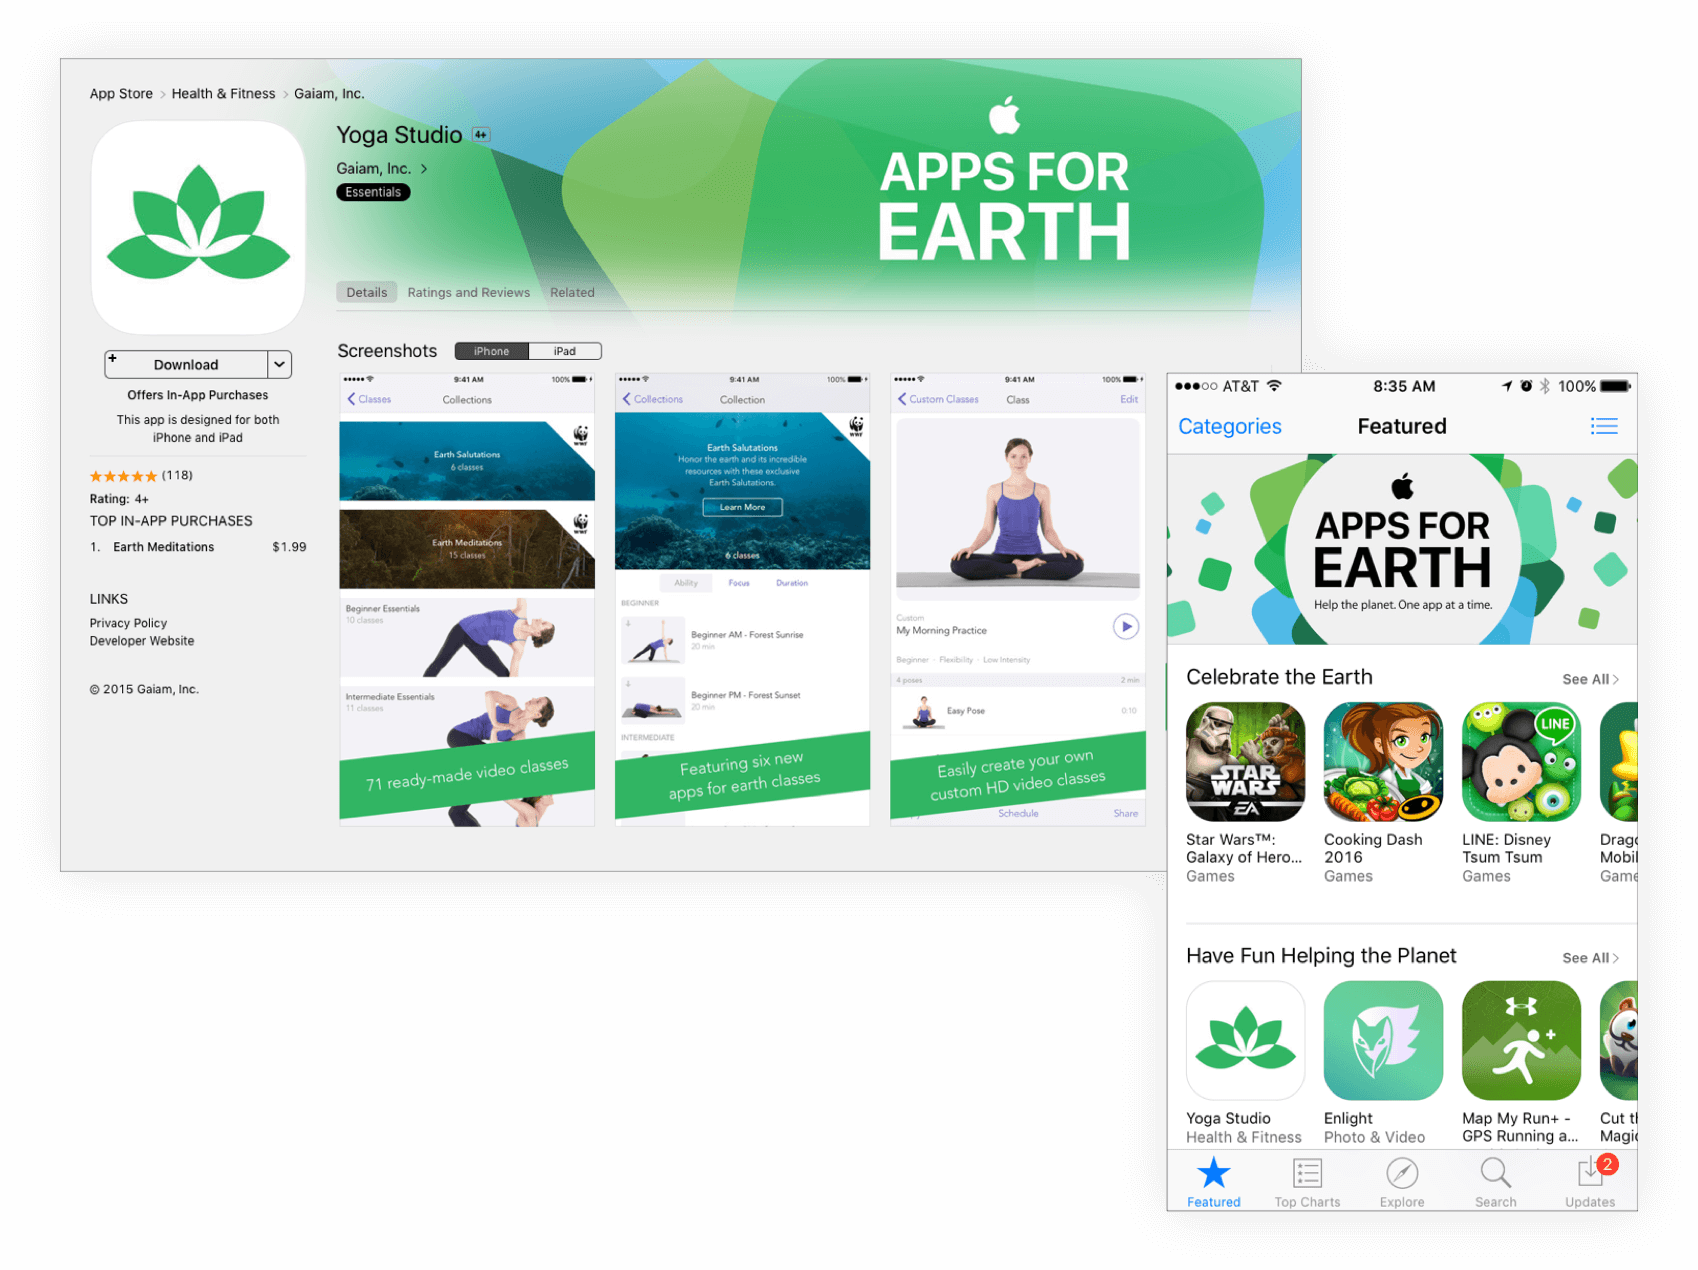 ys_appsforearth_appstore